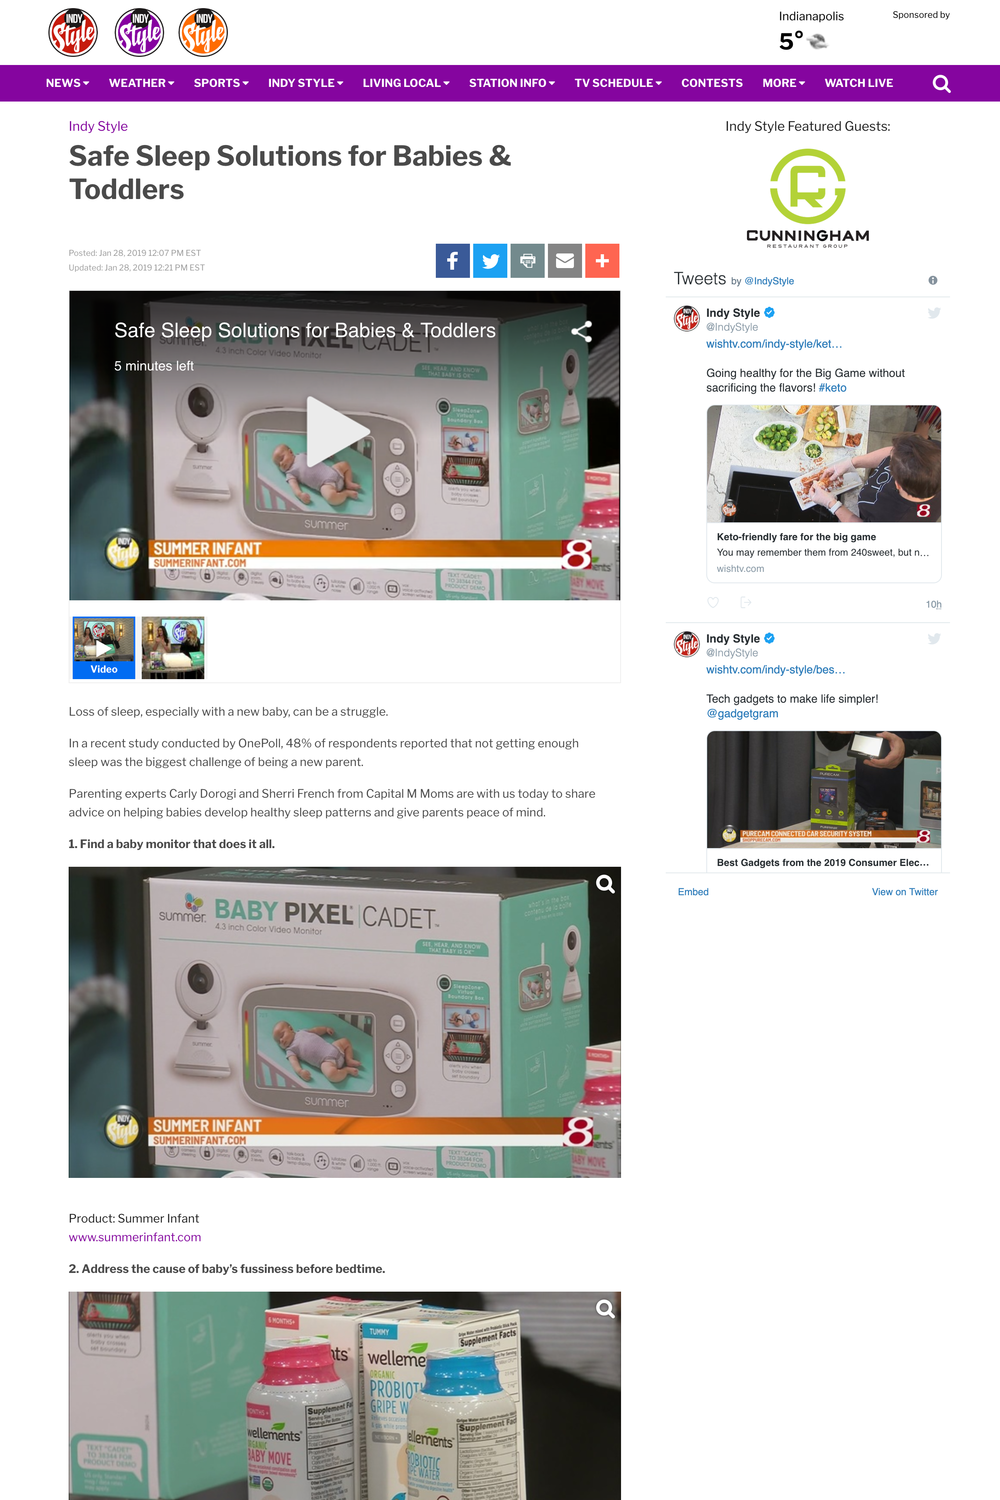 2019.01.28_WISH-TV (CBS 3) Indianapolis, Indy Style Online_Summer Infant Baby Pixel Cadet Video Monitor_cropped 2x3.png